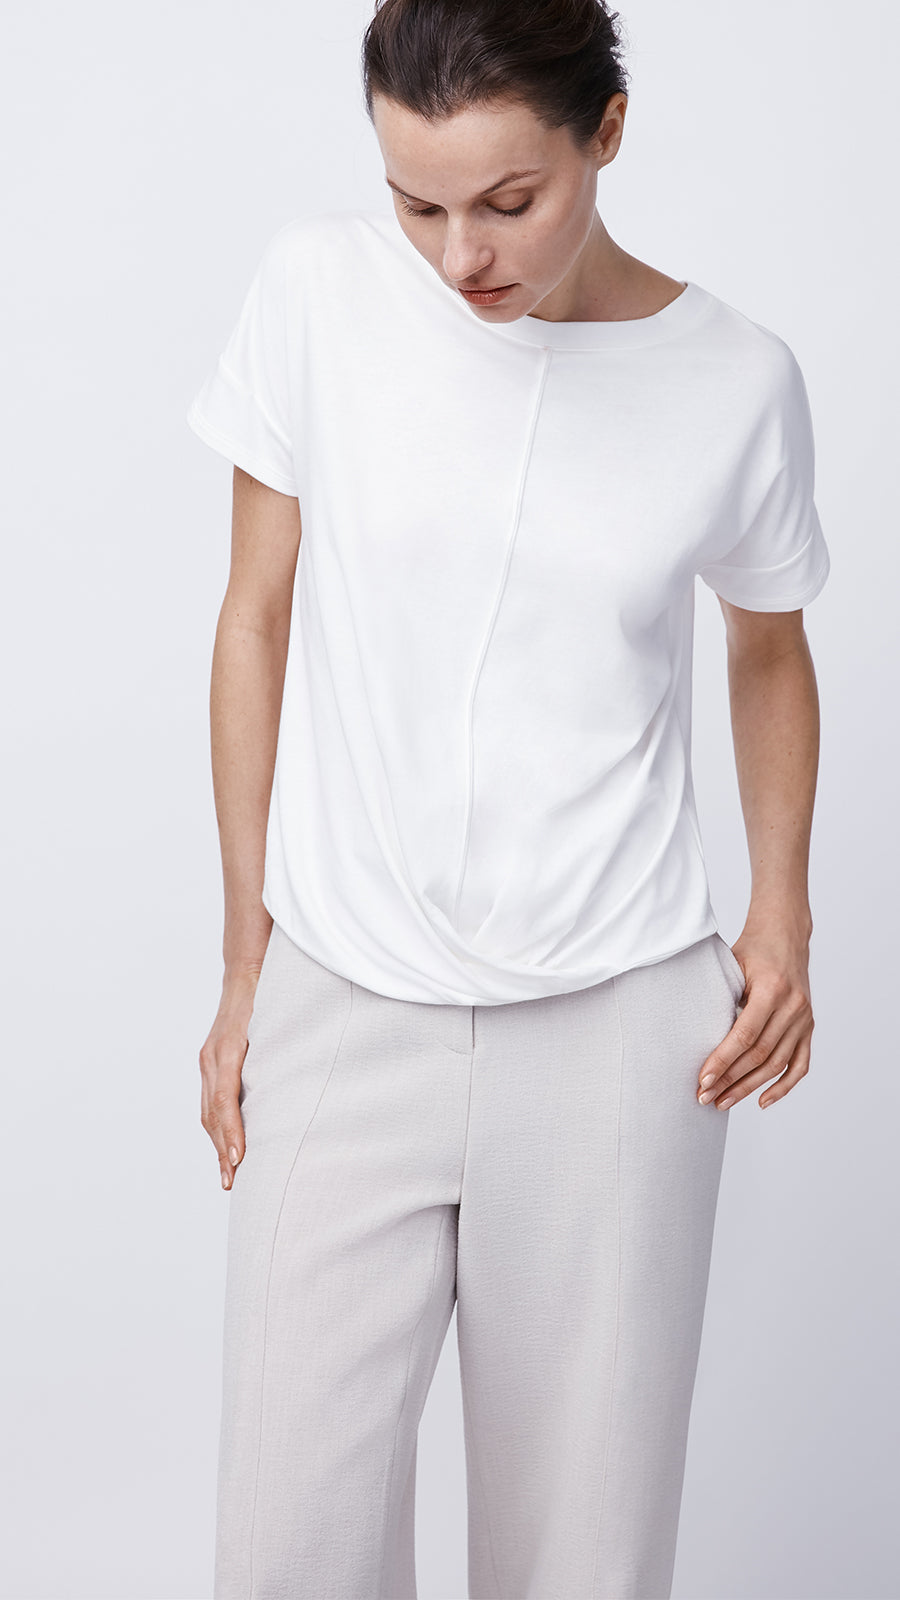 Eco-Friendly Short Sleeve Cross Front Top in Ivory by b new york